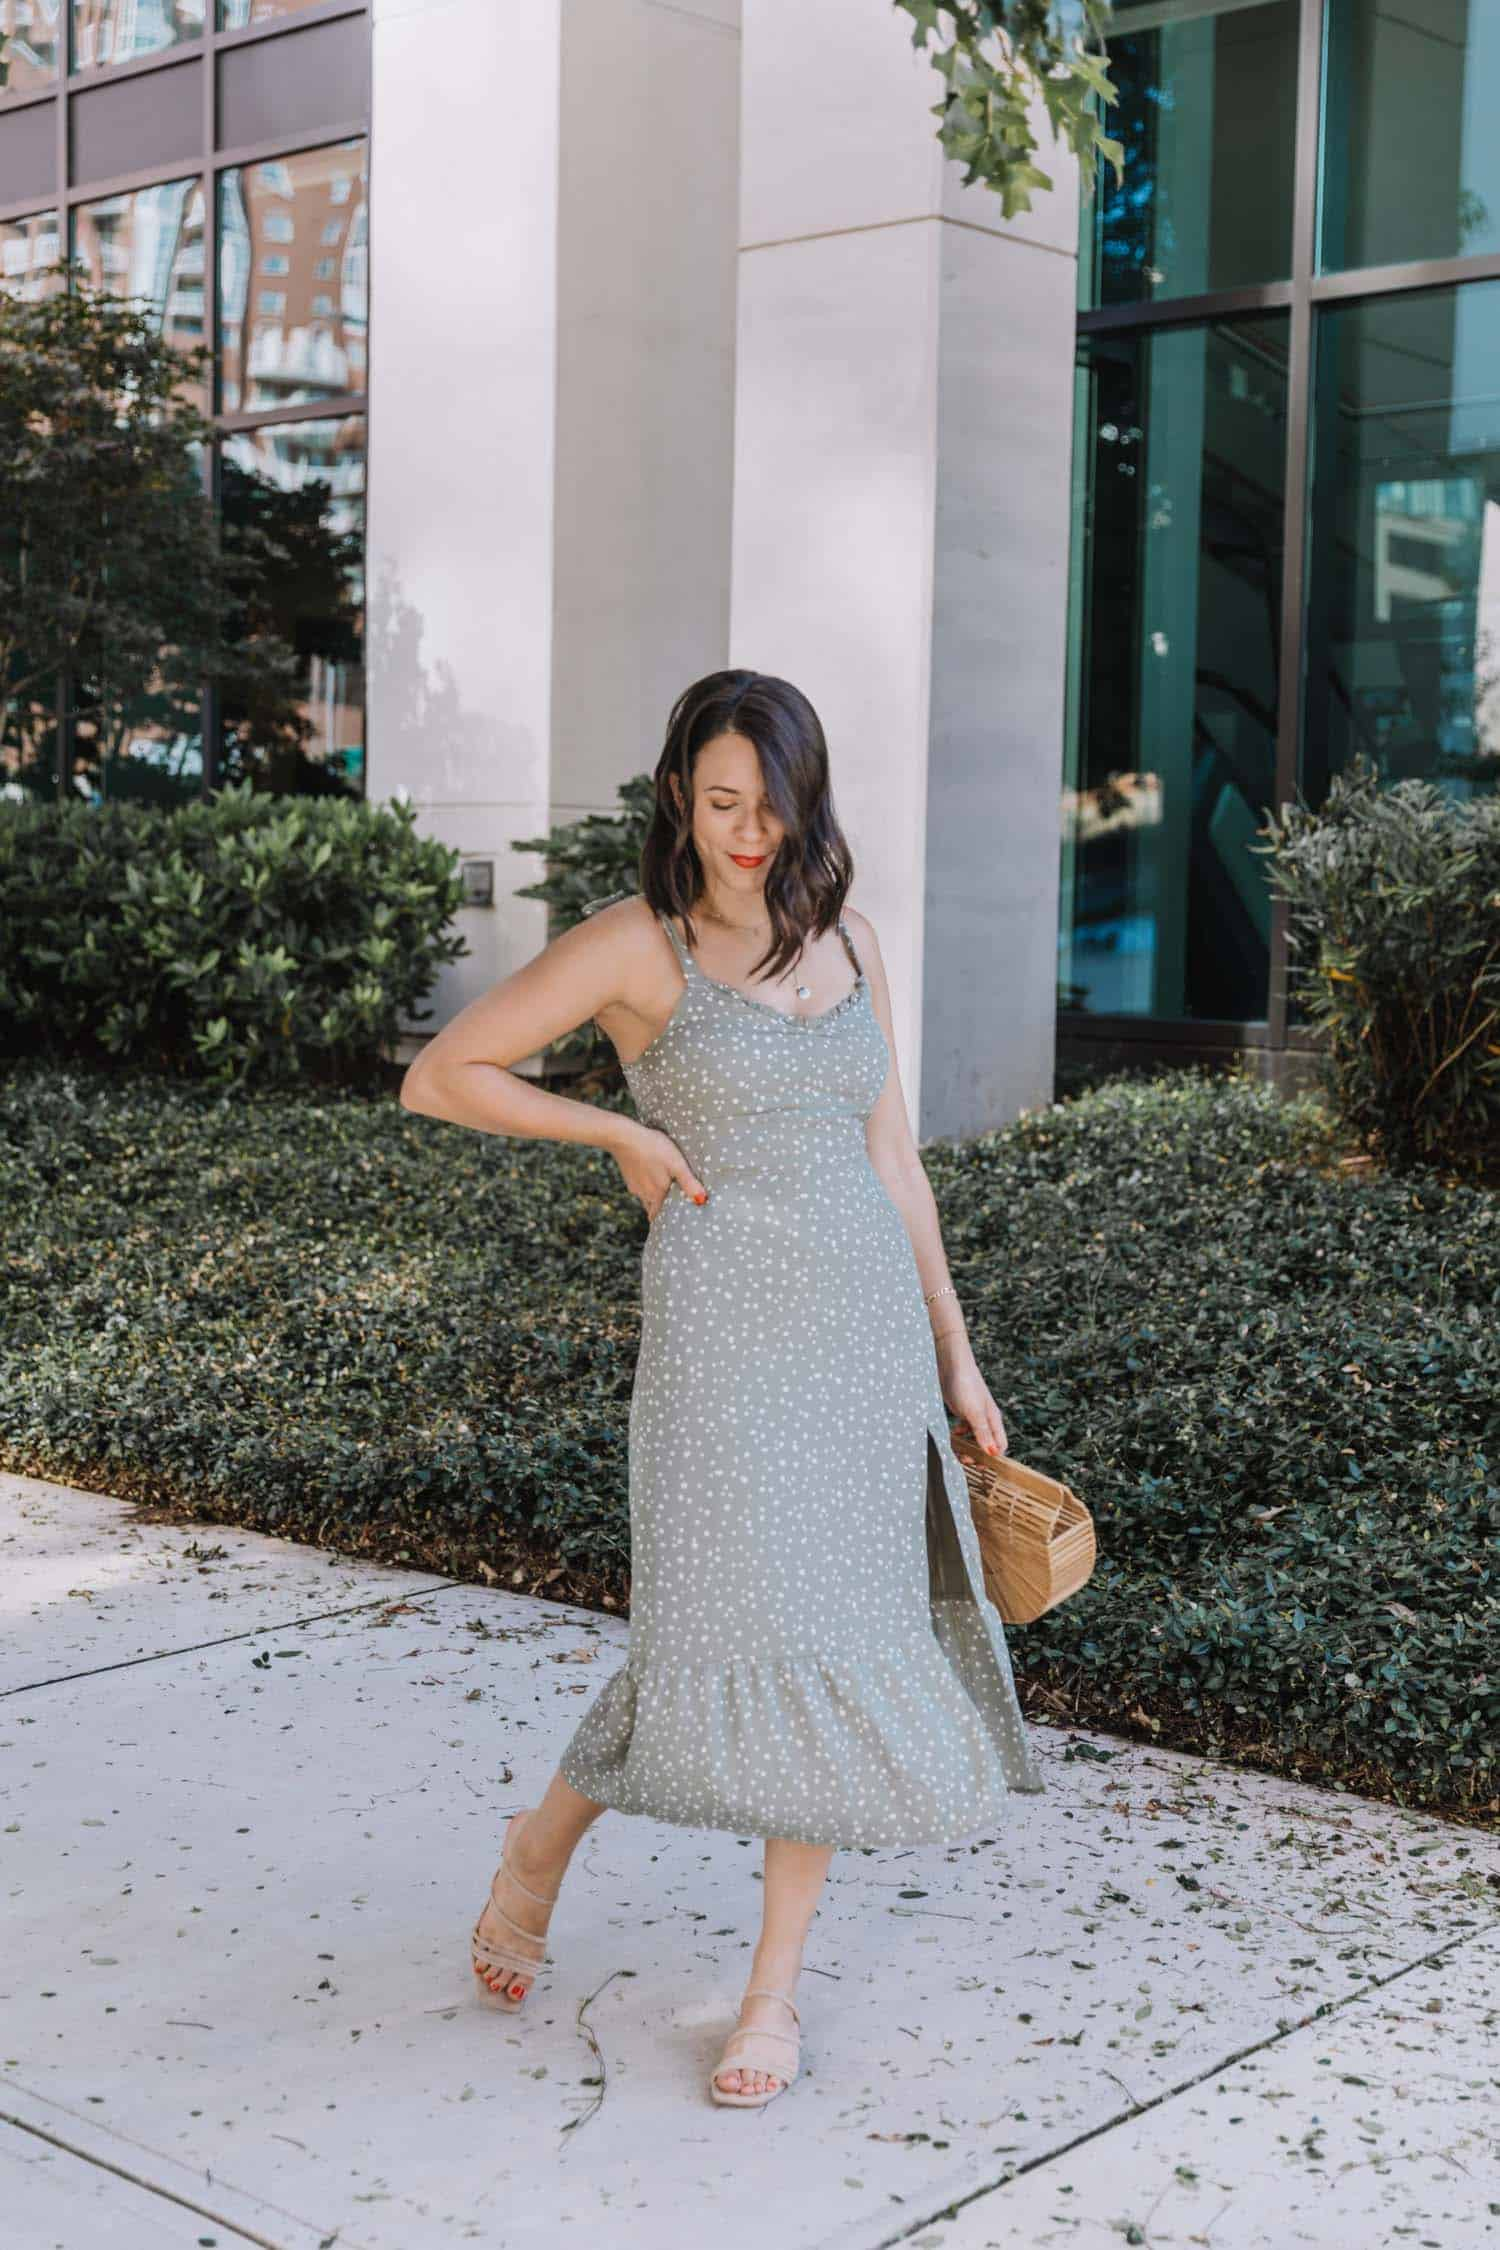 Midi dress for summer under $100